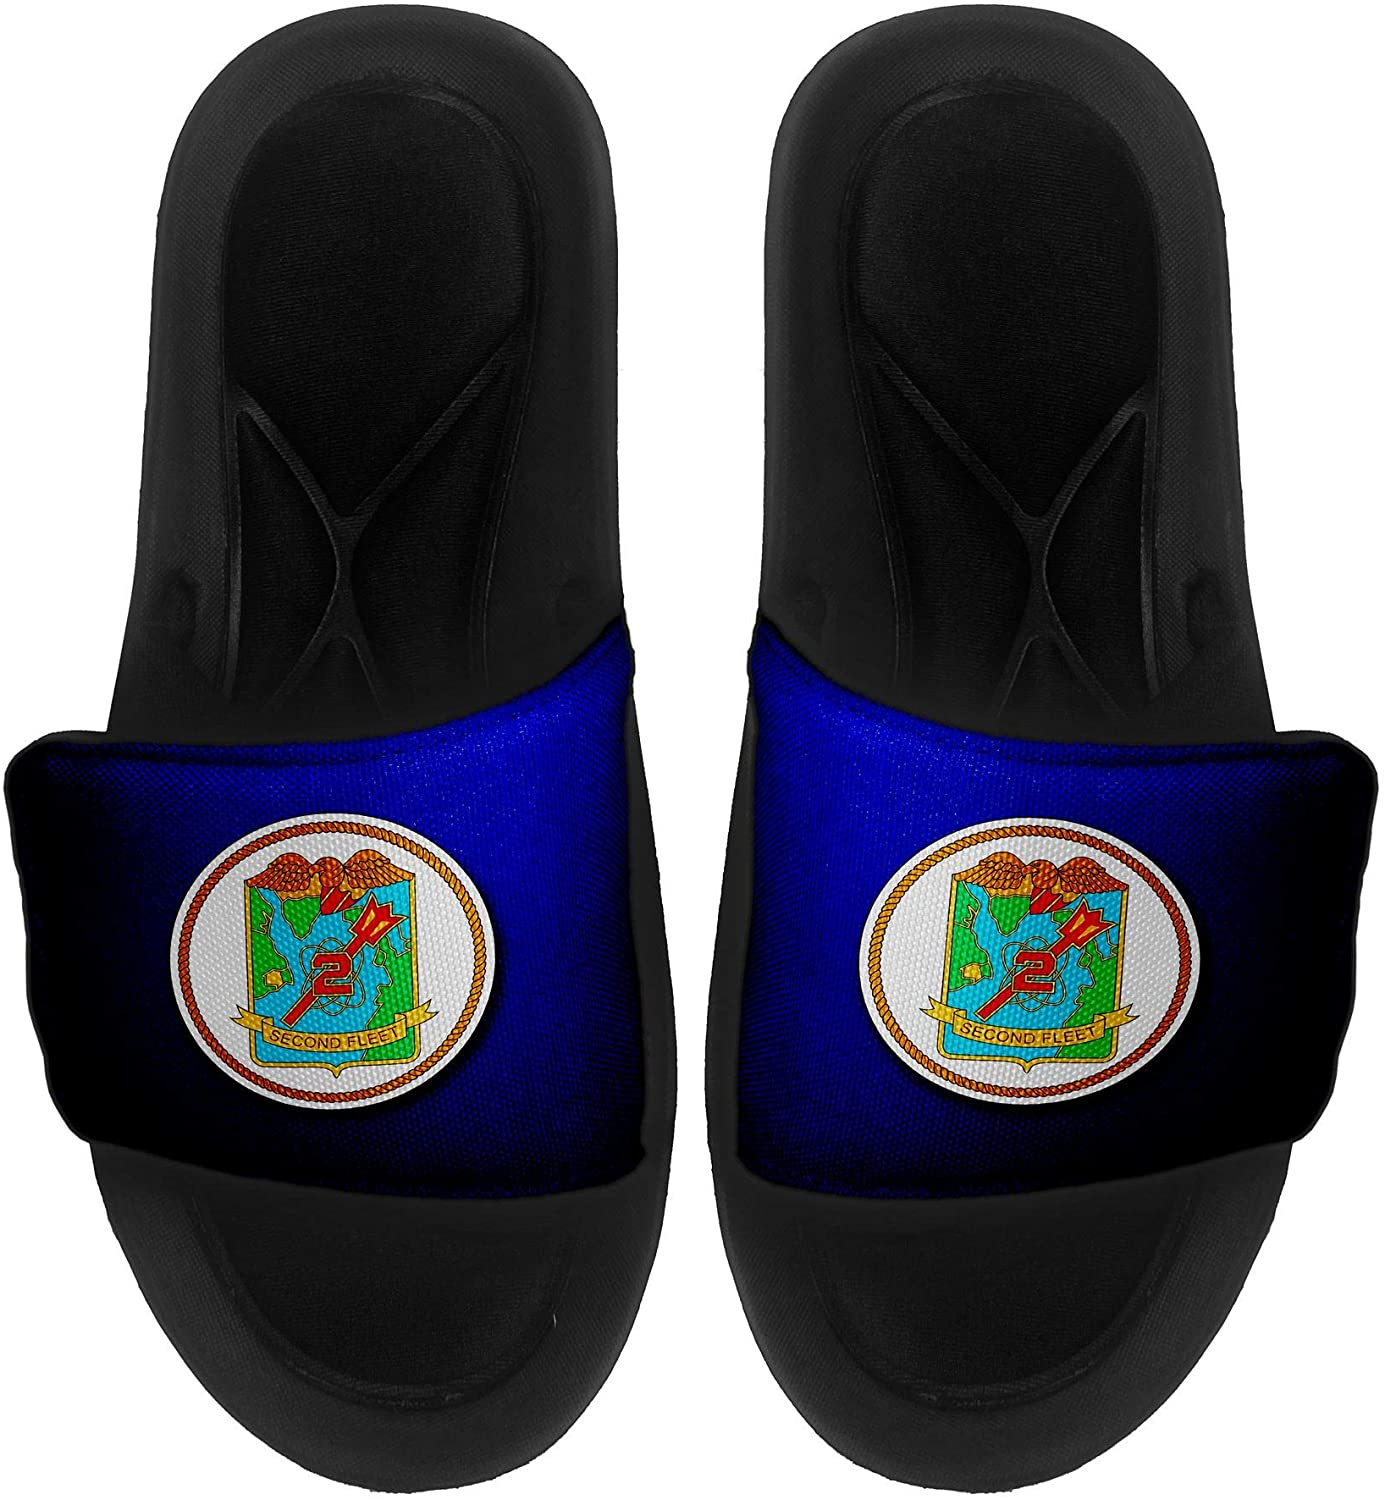 ExpressItBest Cushioned Slide-On Sandals/Slides for Men, Women and Youth - US Naval Forces Southern Command (USNAVSO)